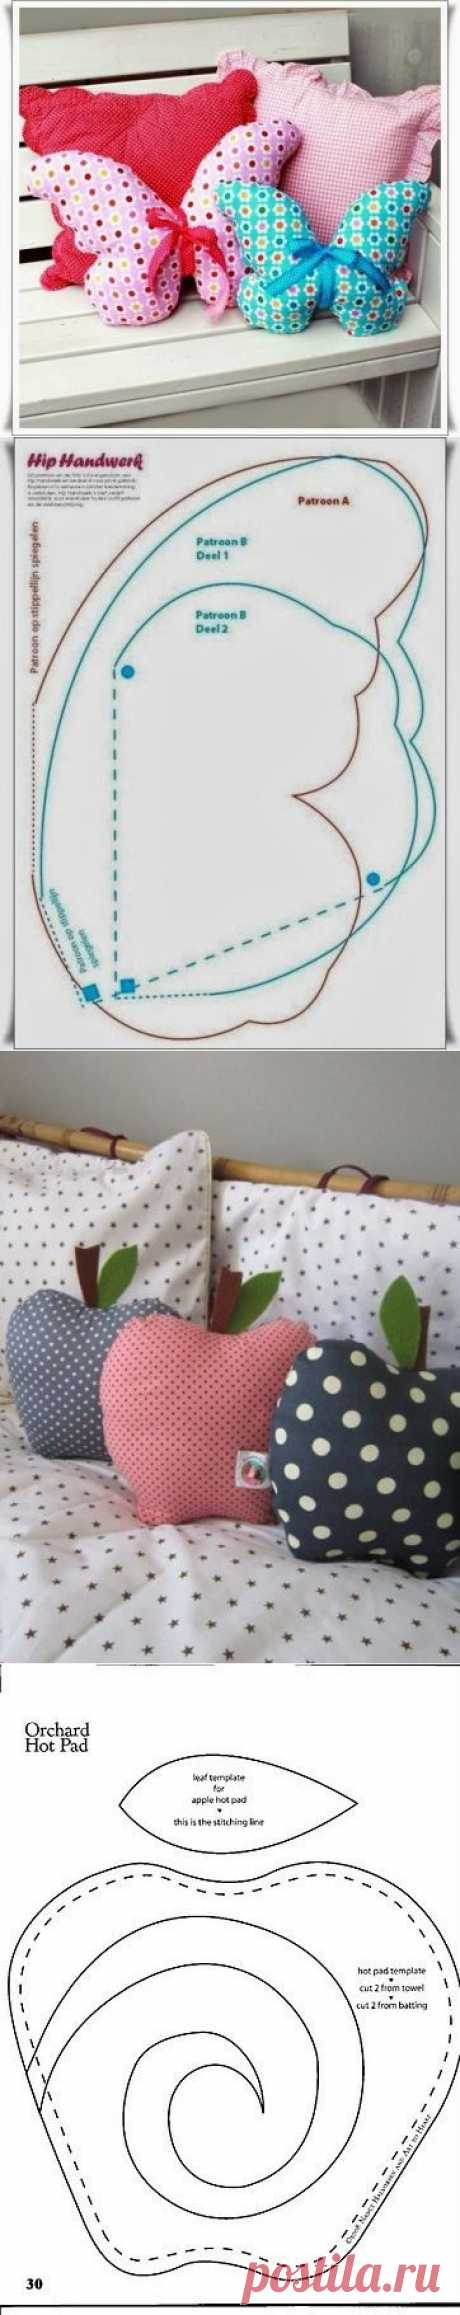 Ideas for pillows + PATTERNS \/ Various toys of handwork \/ PassionForum - master classes in needlework